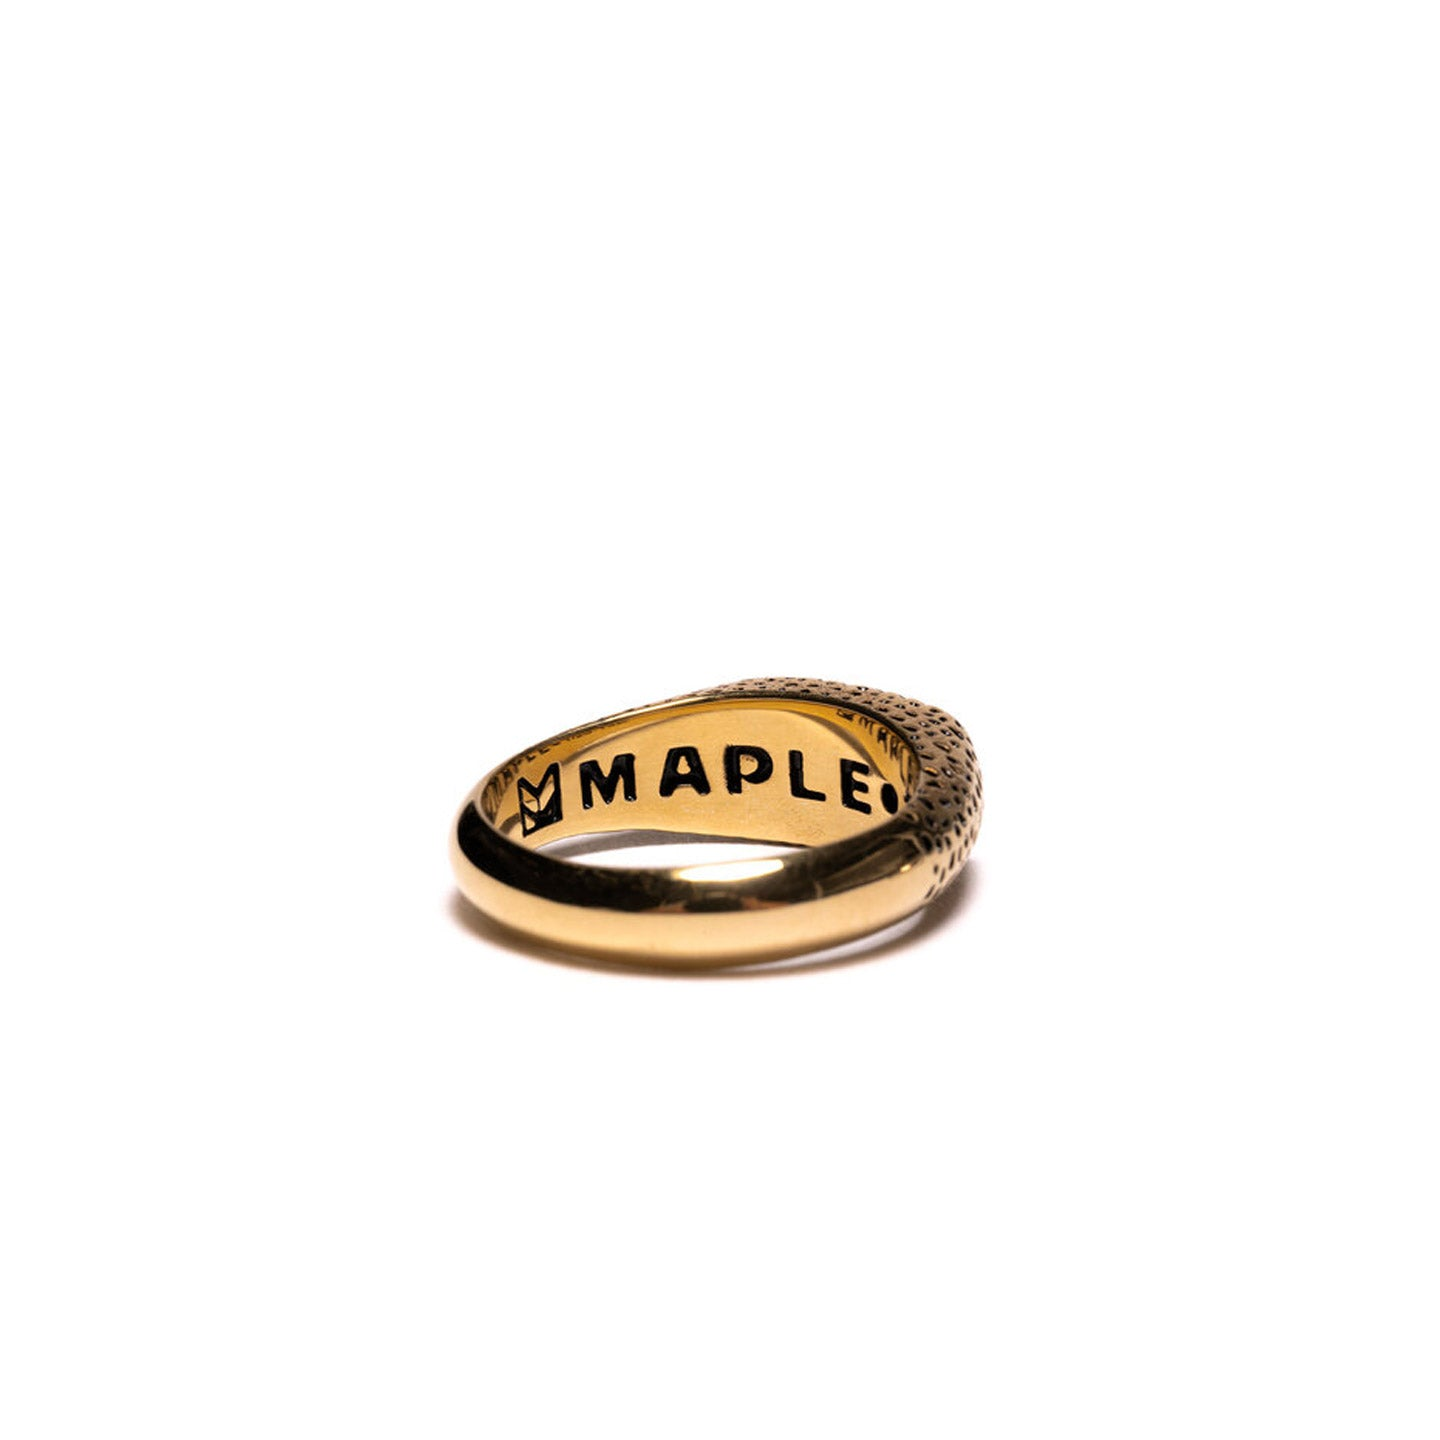 MAPLE NUGGET RING SLIM 14K GOLD PLATED